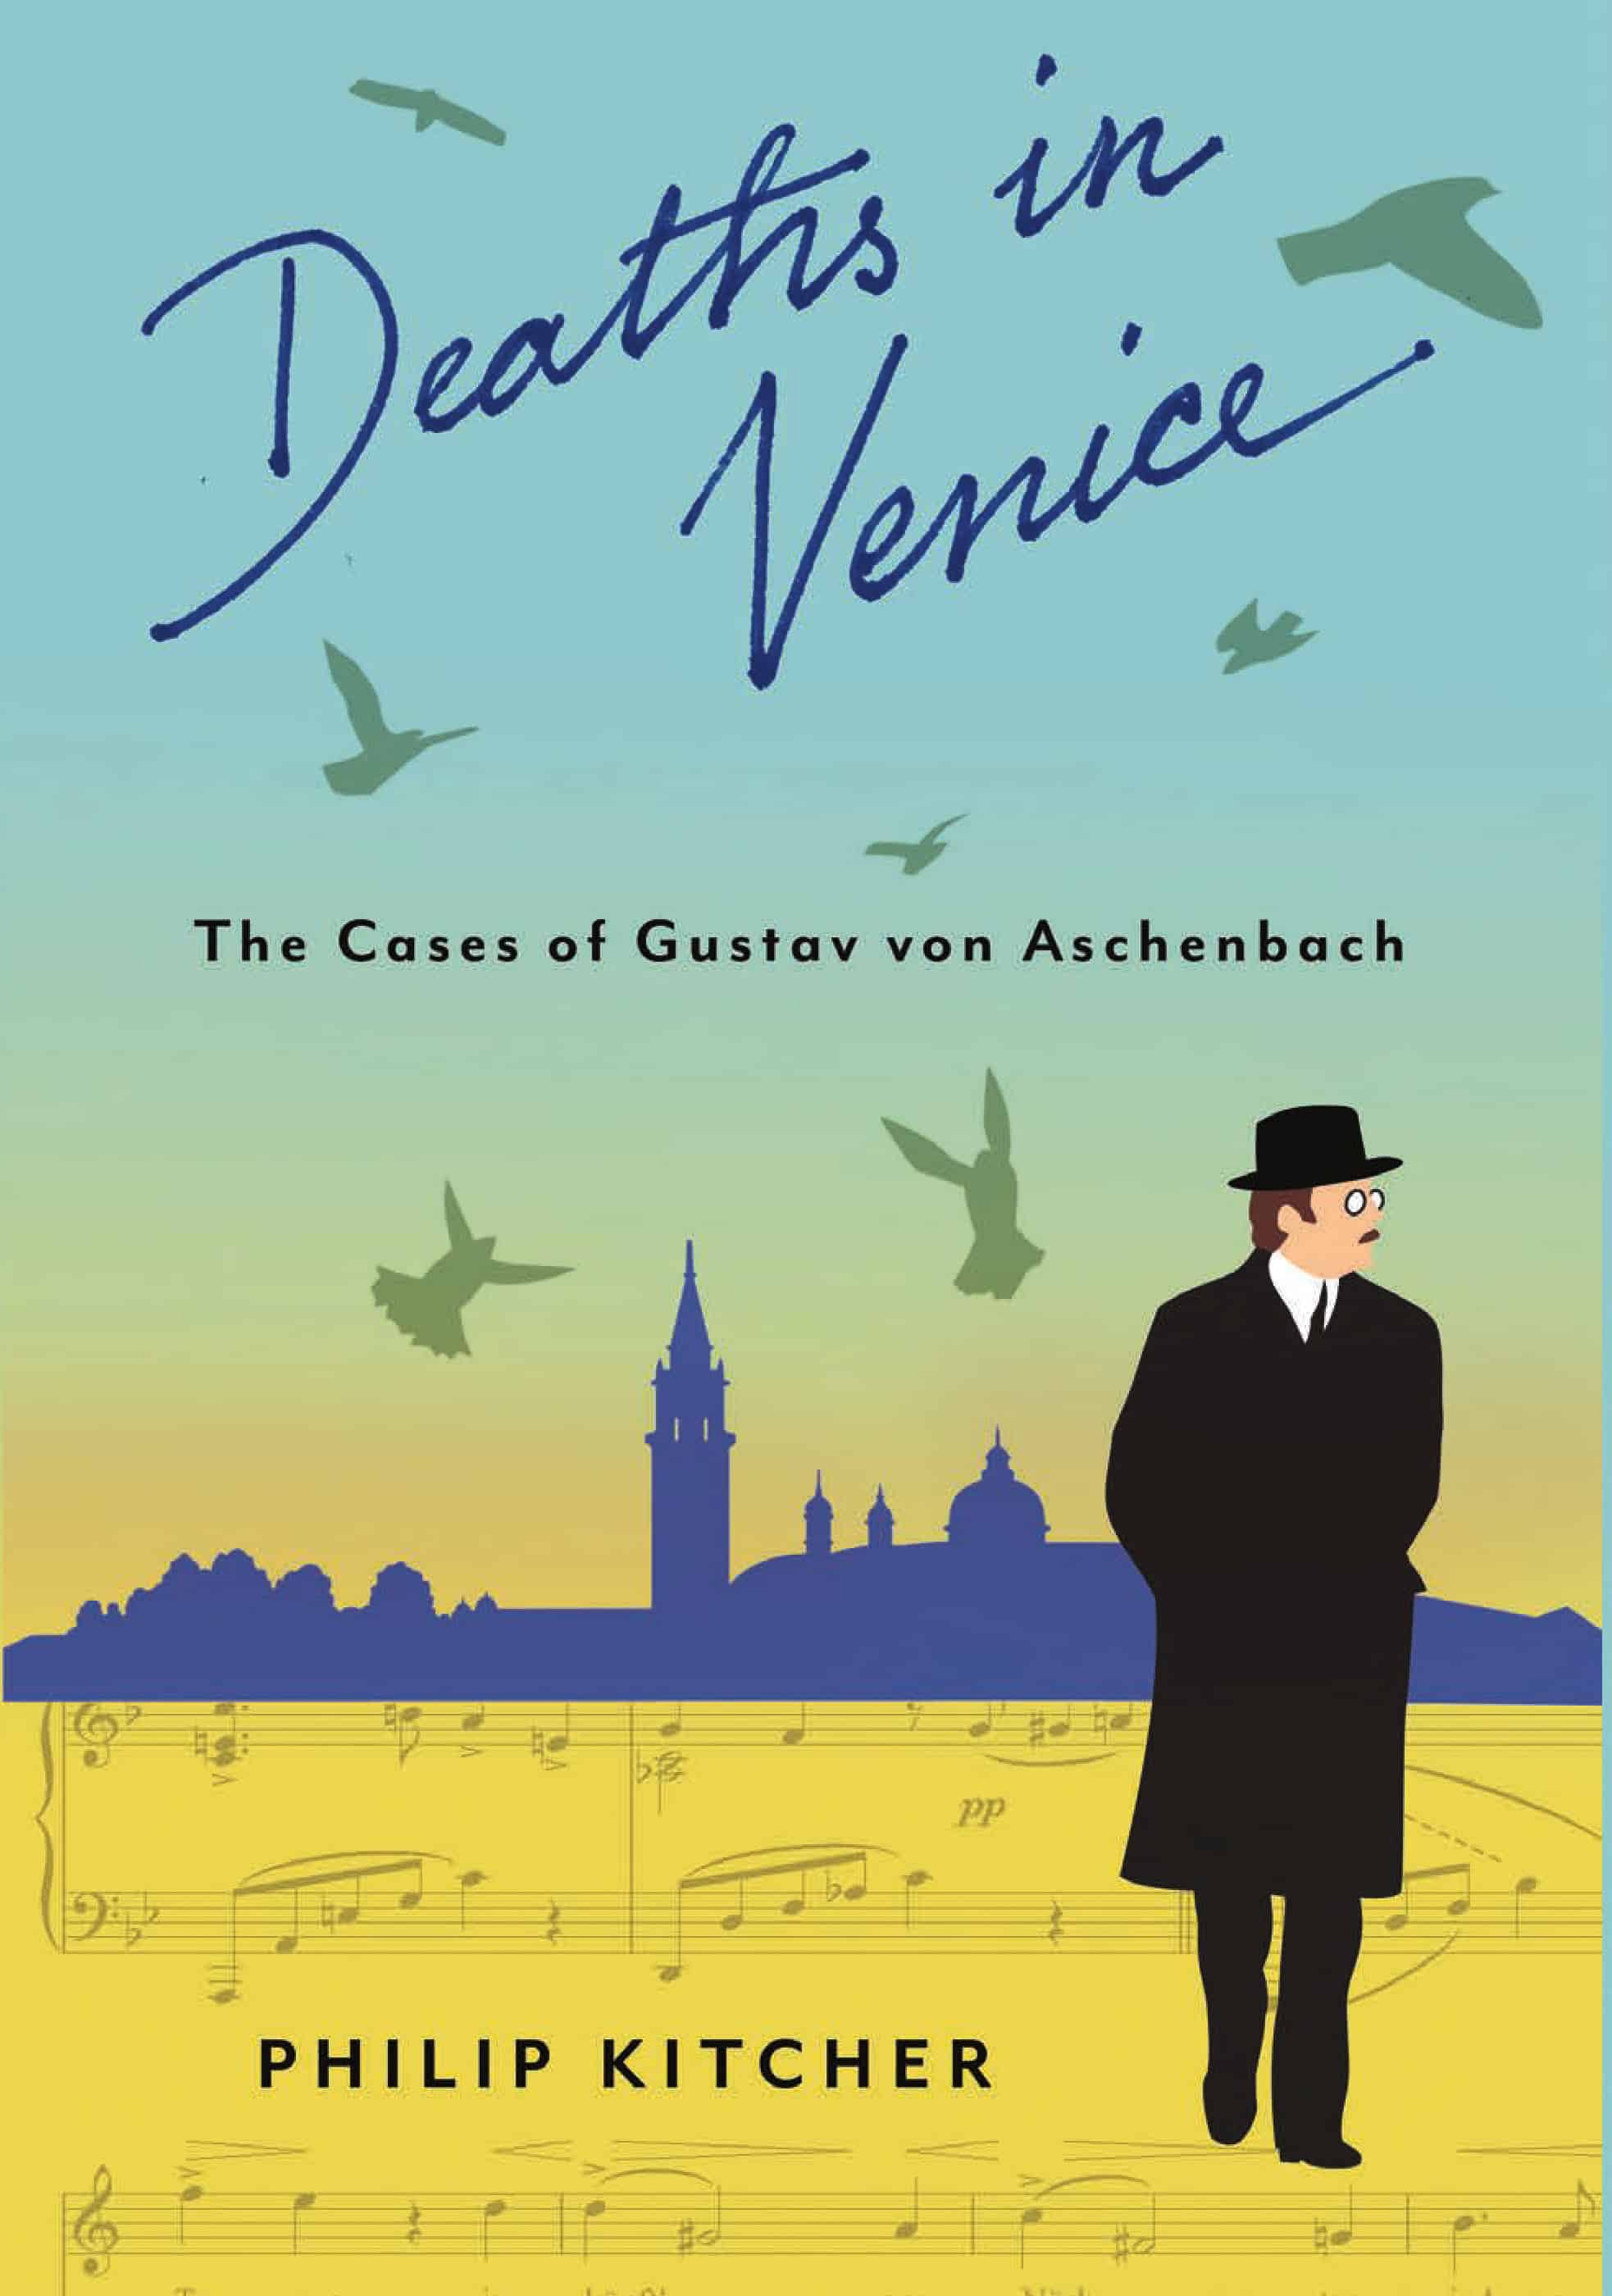 Deaths in Venice The Cases of Gustav von Aschenbach - Deaths in Venice: The Cases of Gustav von Aschenbach